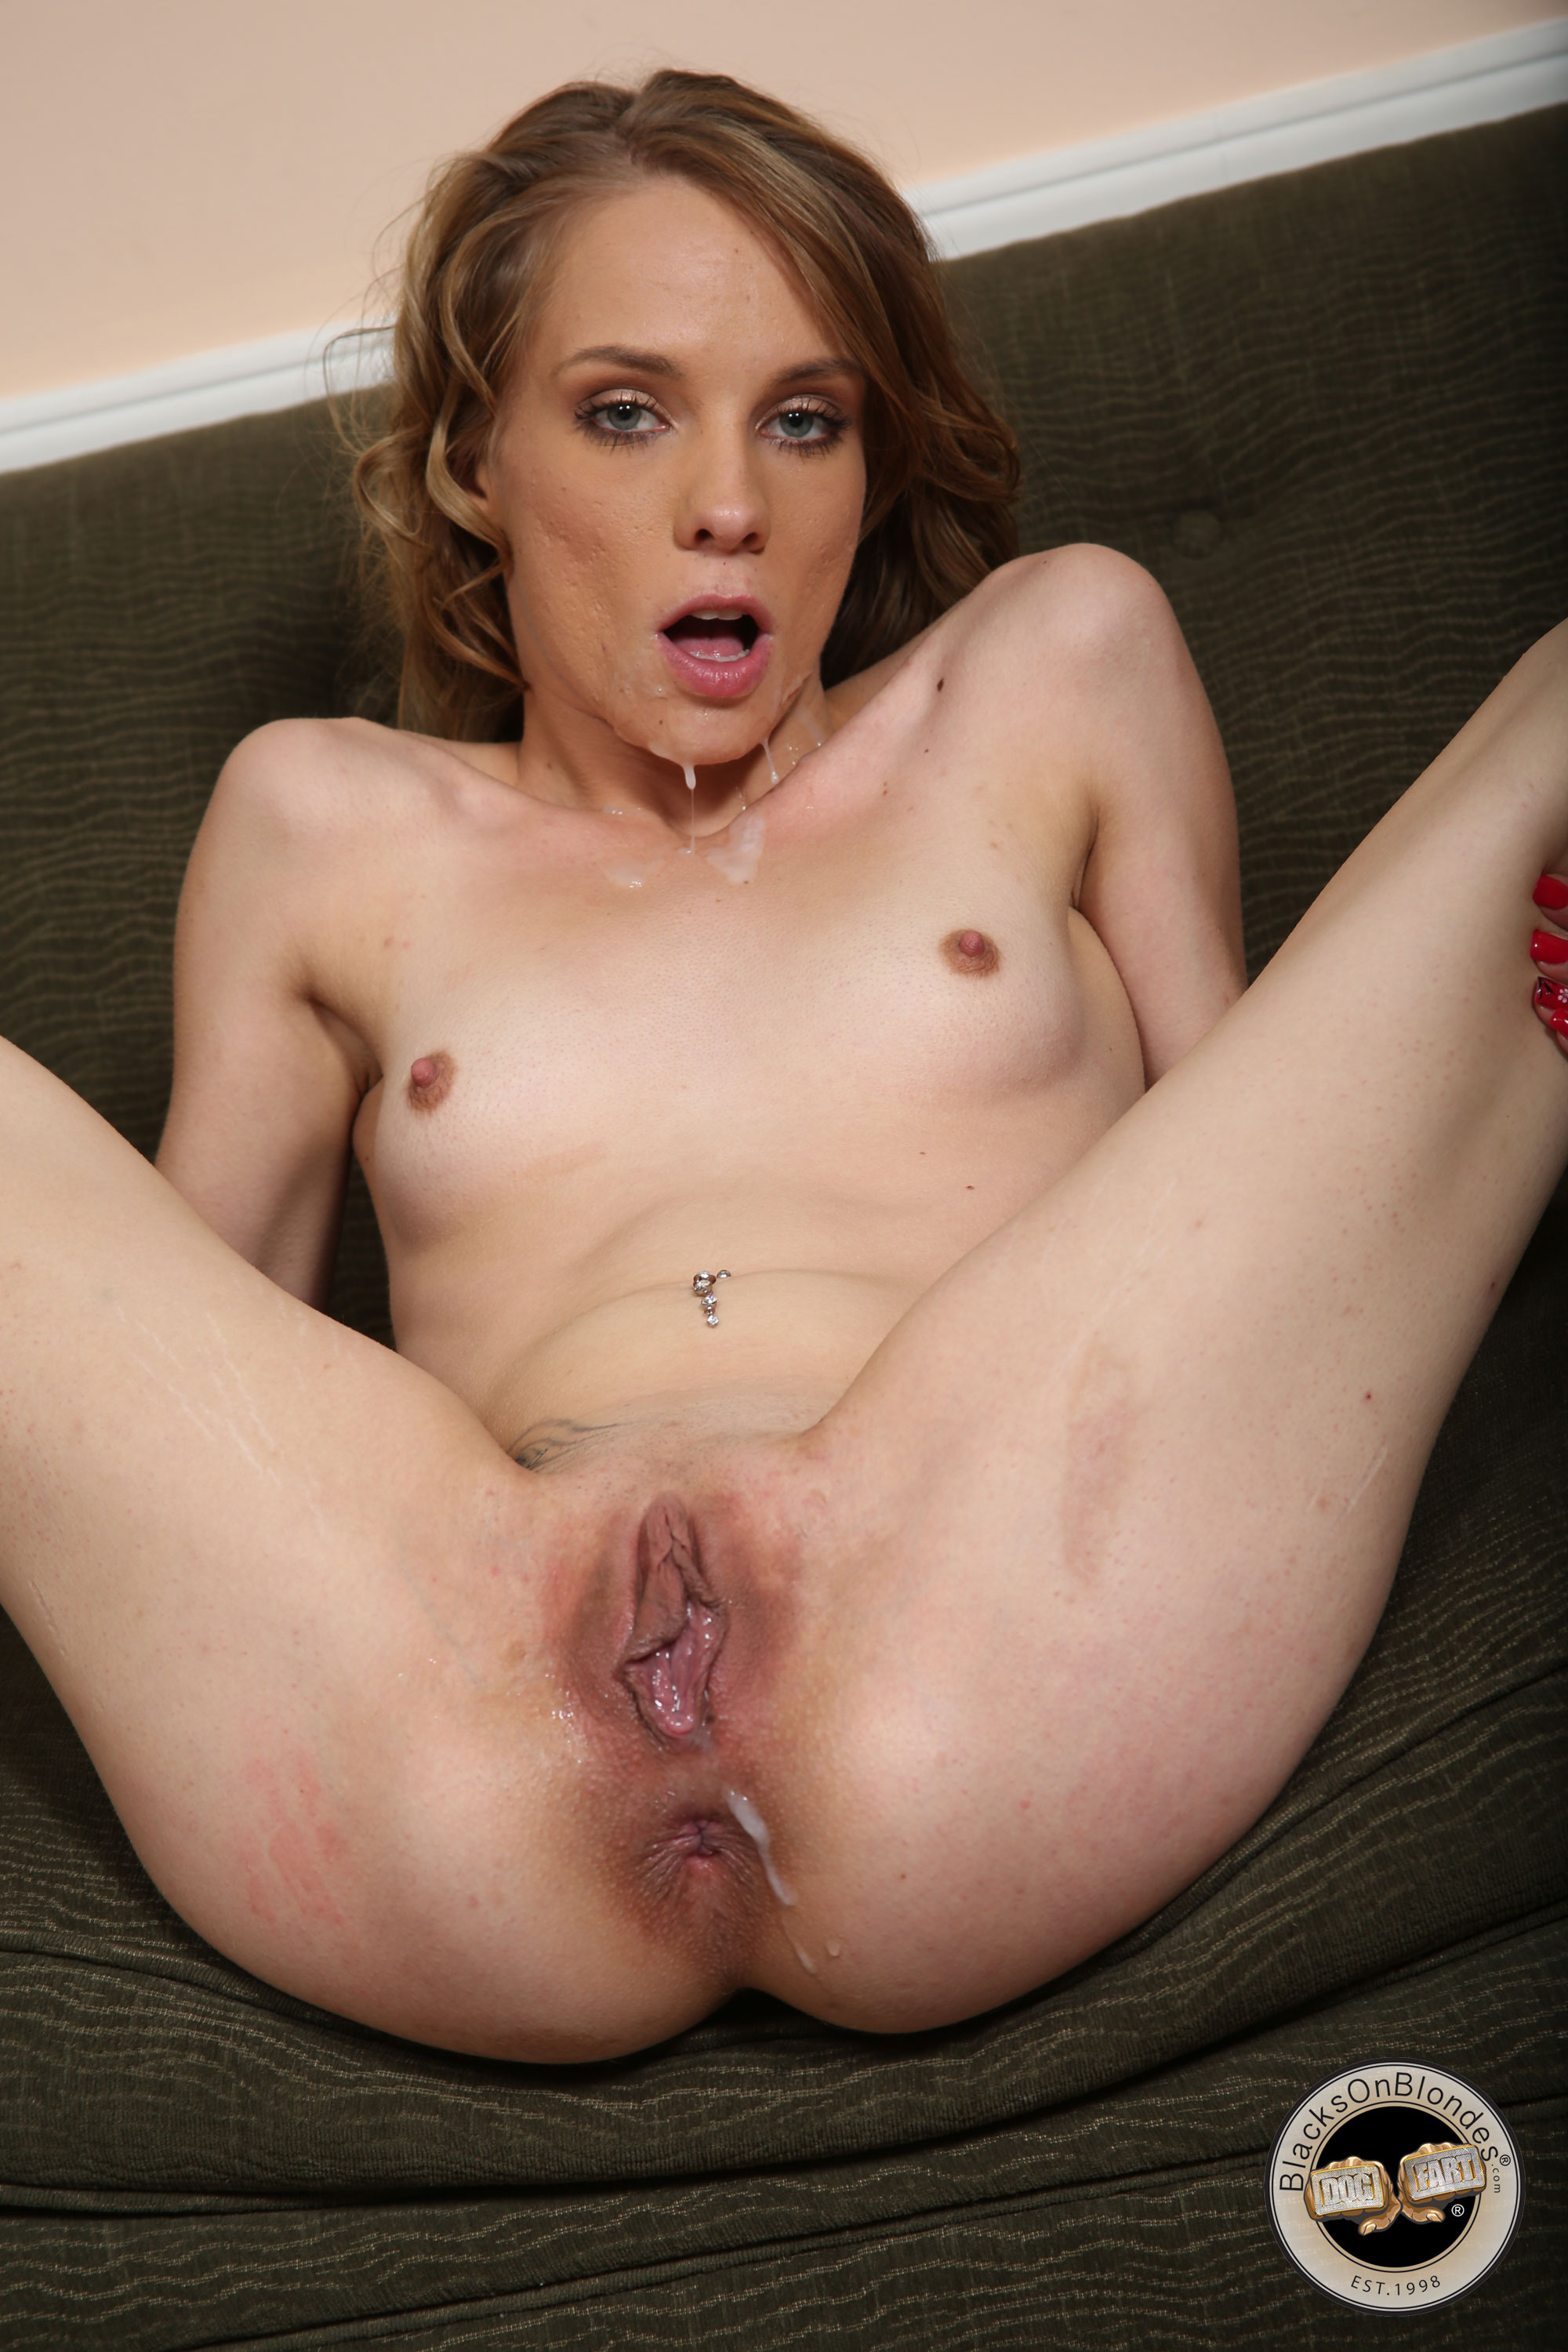 Abigaile johnson big meaty snack for me 10